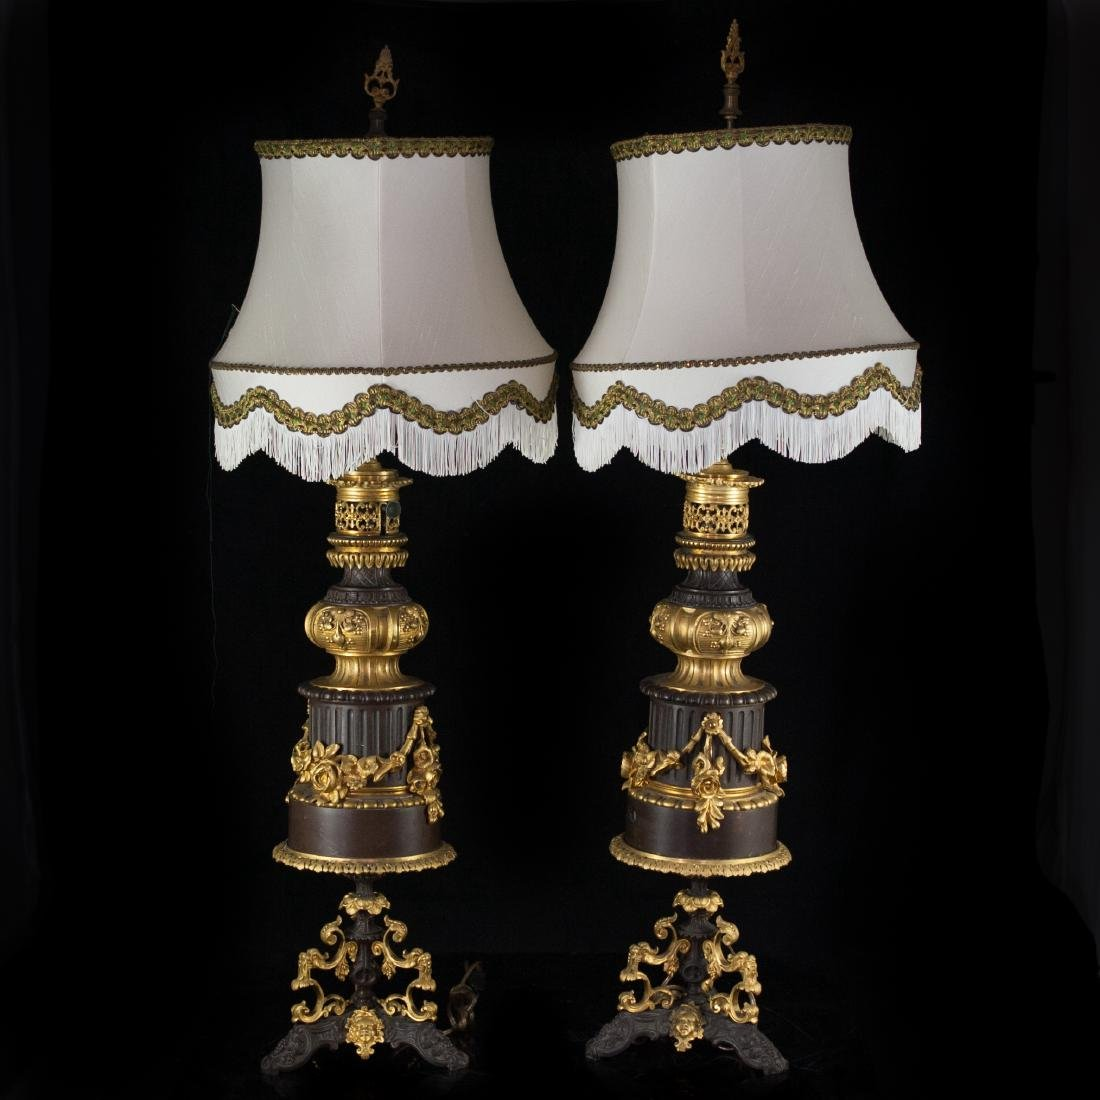 Two Tone French Bronze Lamps